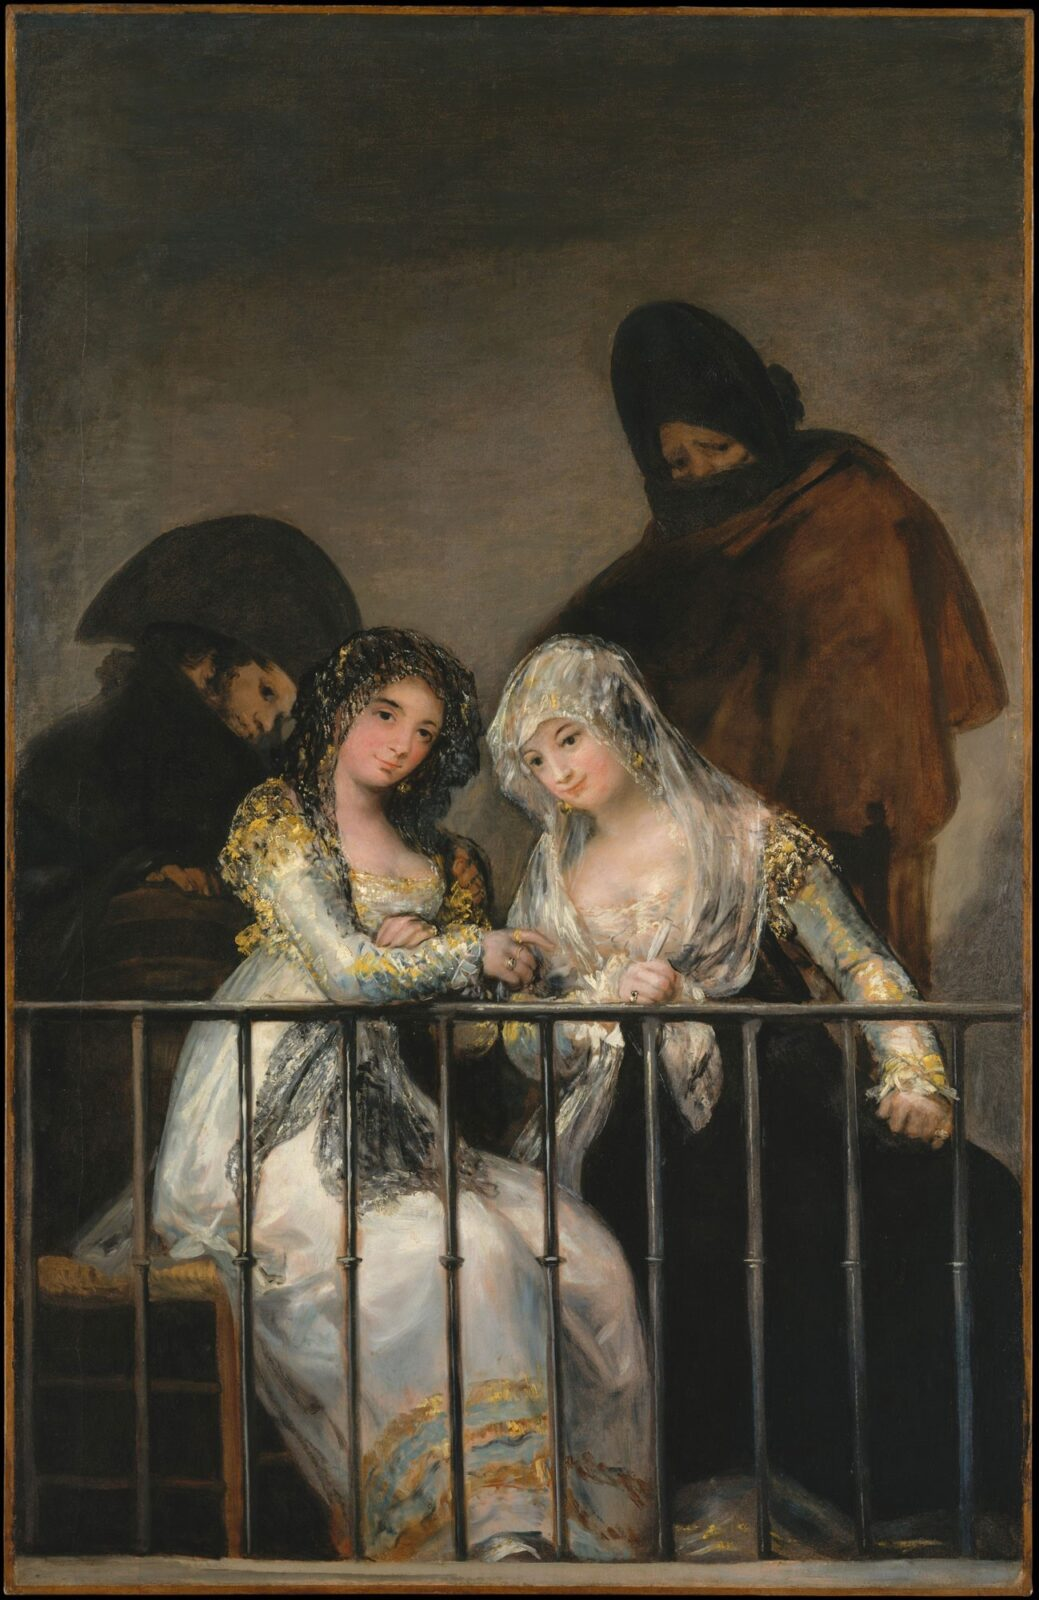 Dozens of works attributed to Goya do not belong to him, the expert says